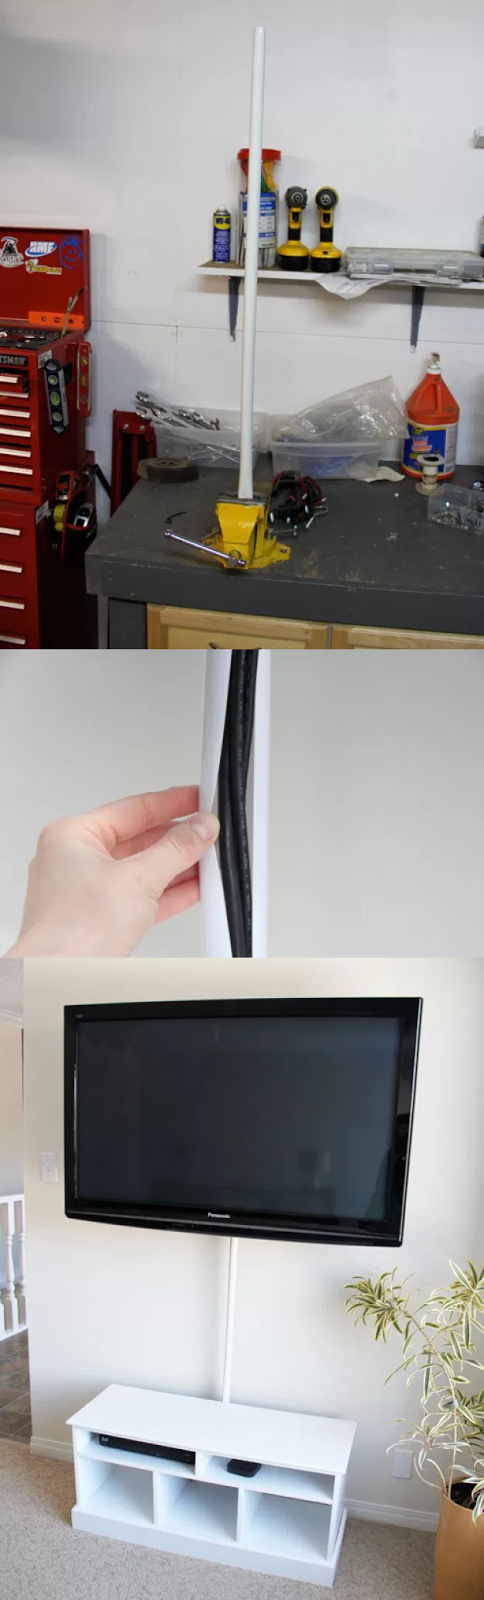 6.Tidy television wire